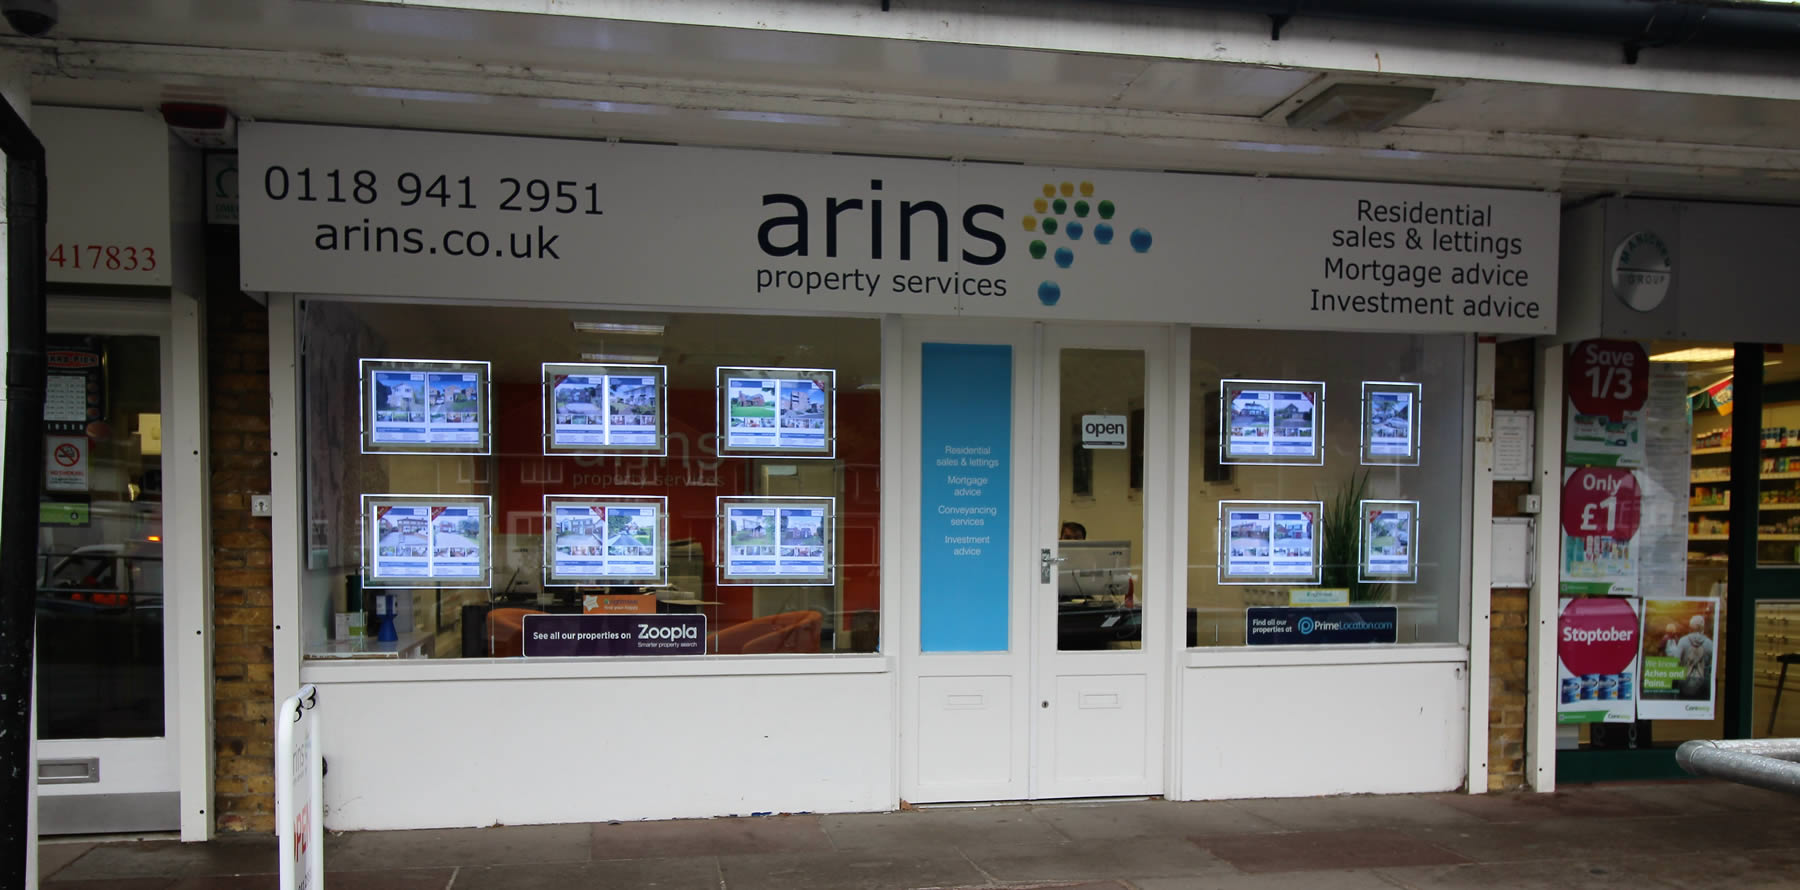 Arins Property Services